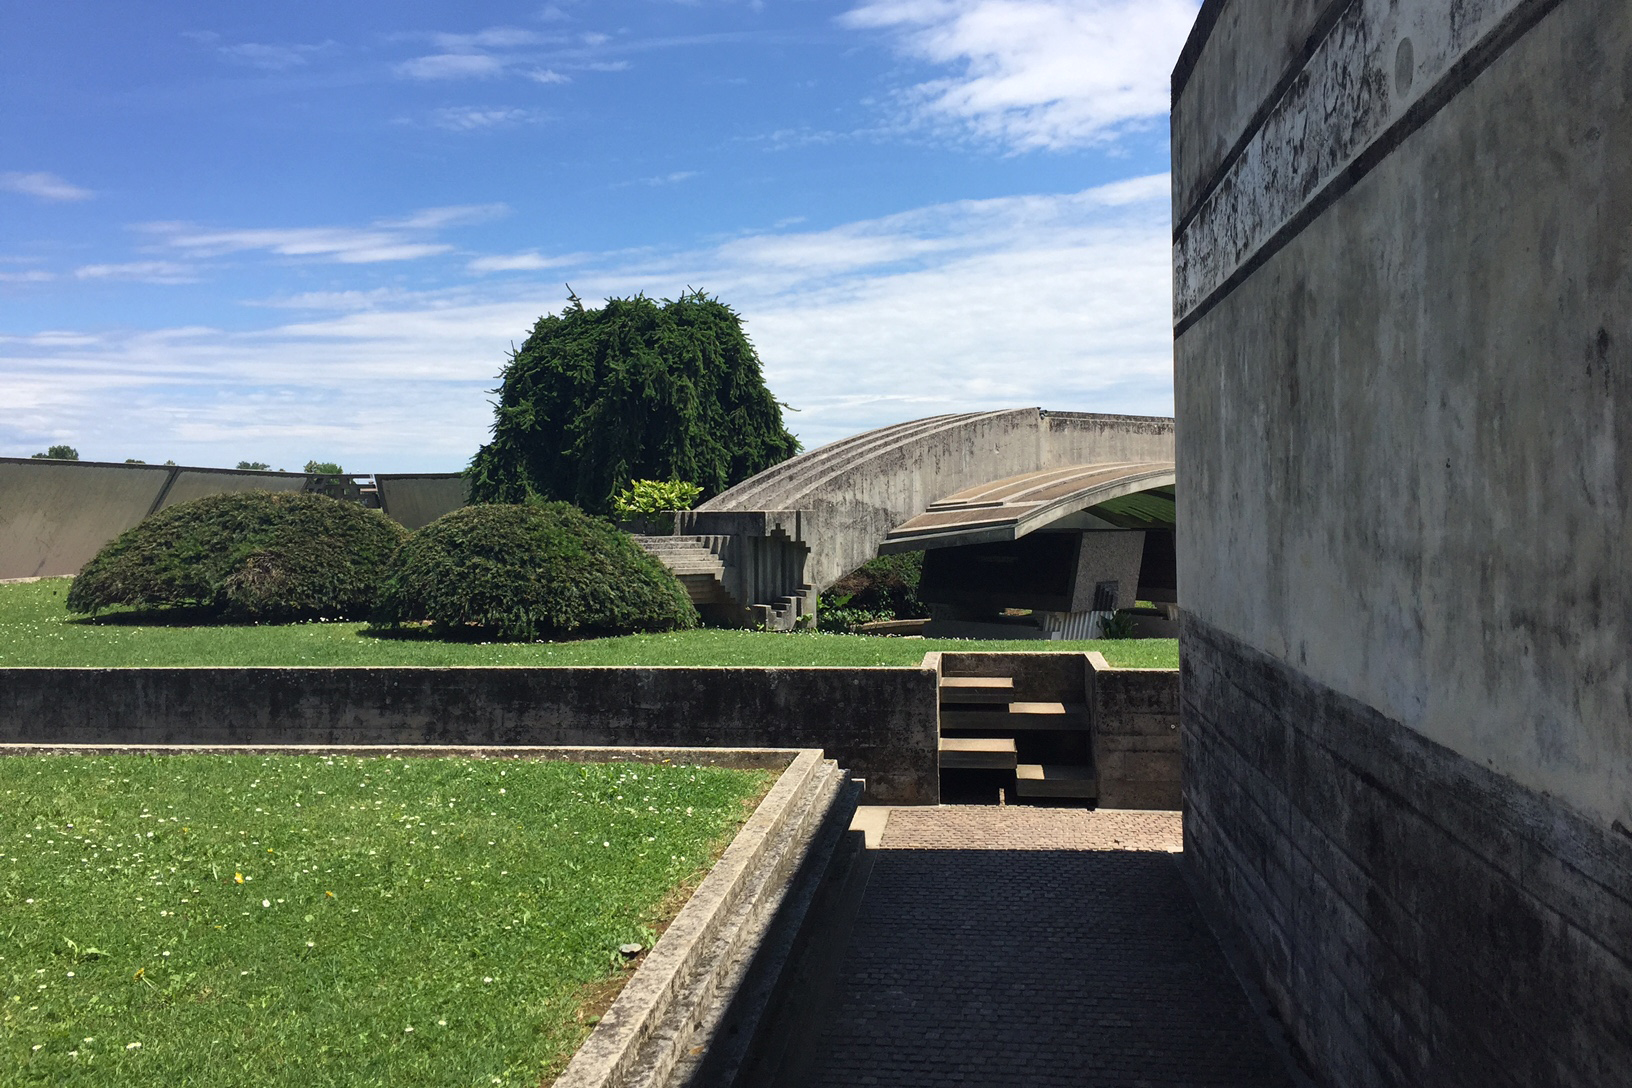 Tattoos and tombs carlo scarpa s great small architecture - Carlo scarpa architecture and design ...